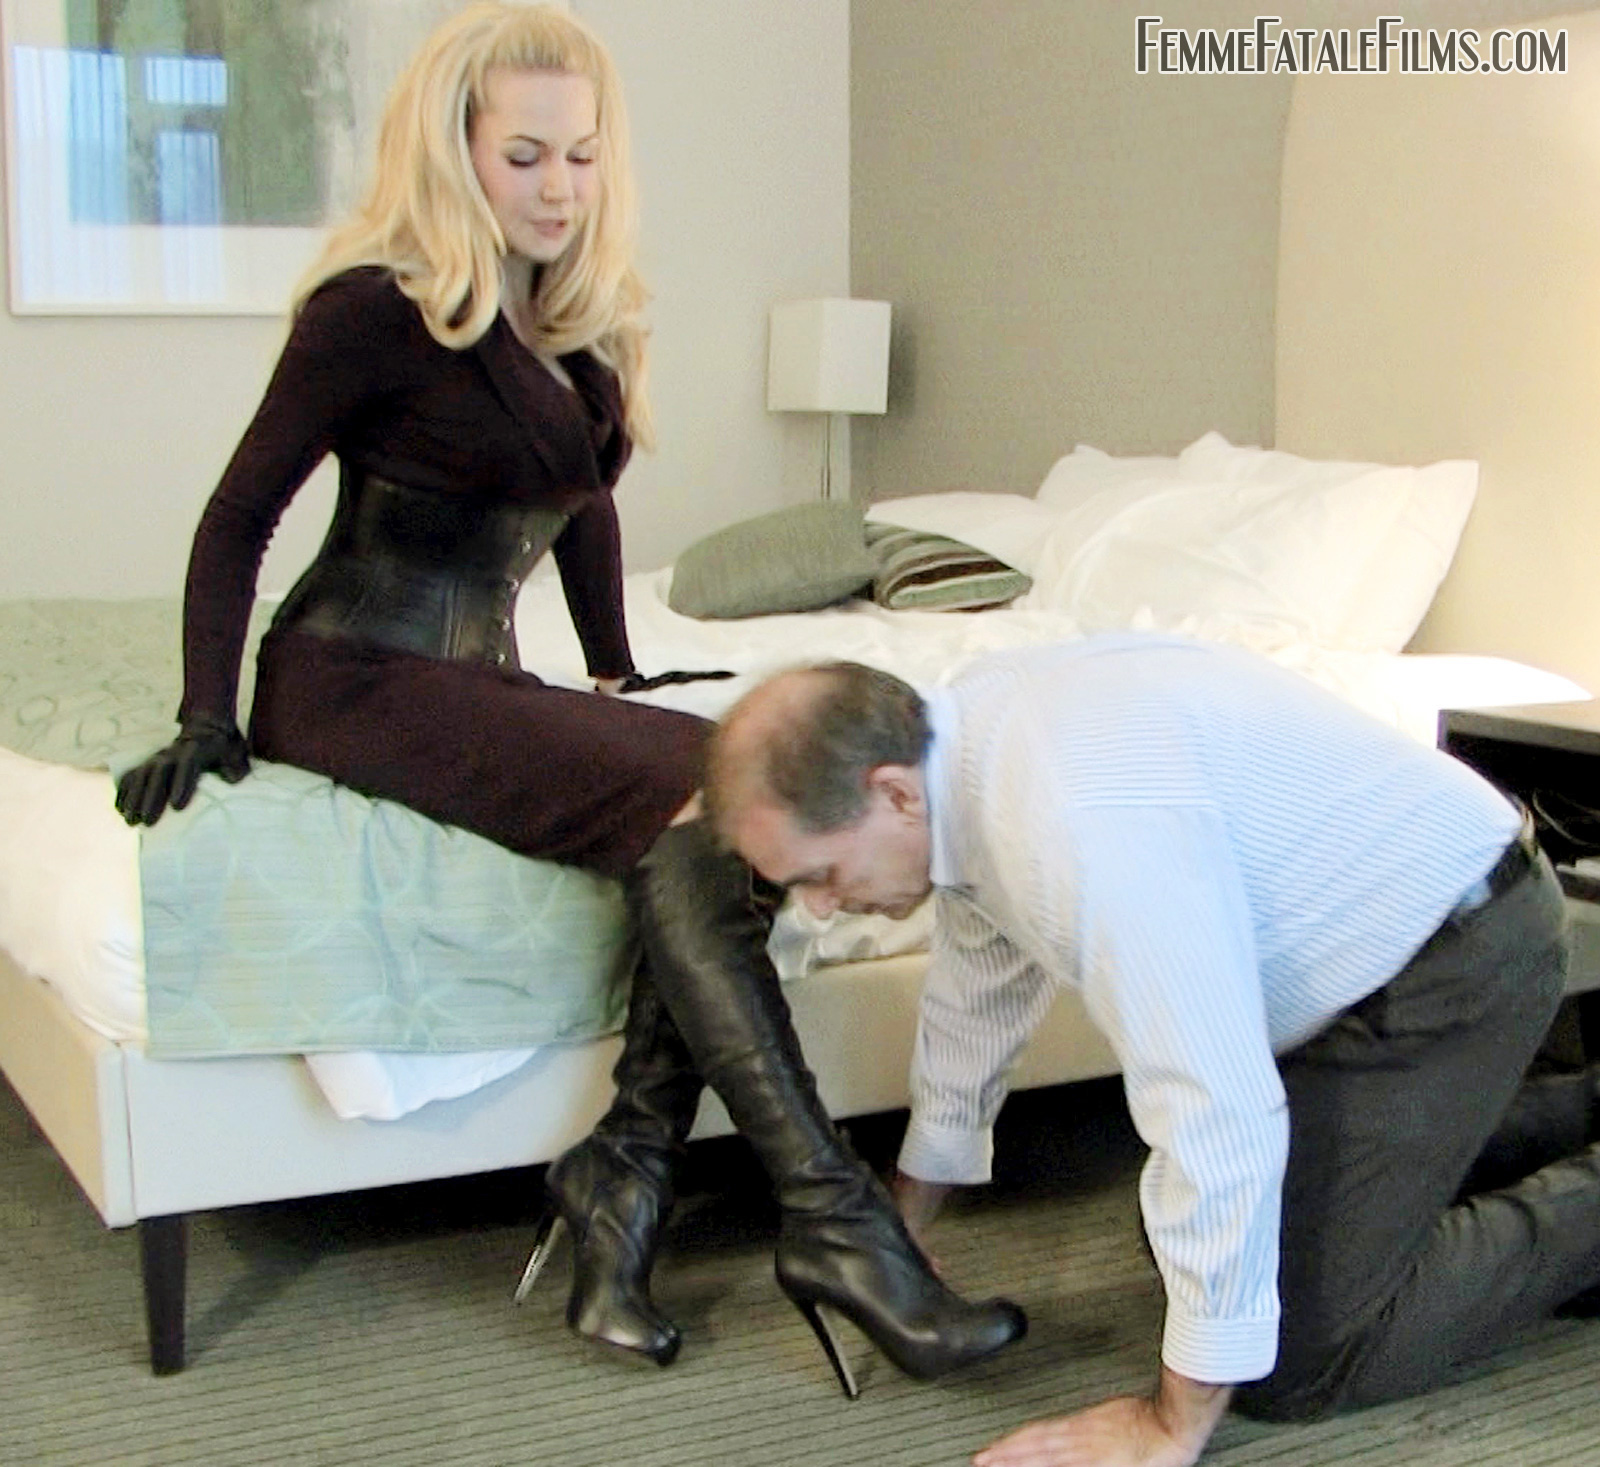 His is how kleio valentien and her stepbrother fight 10